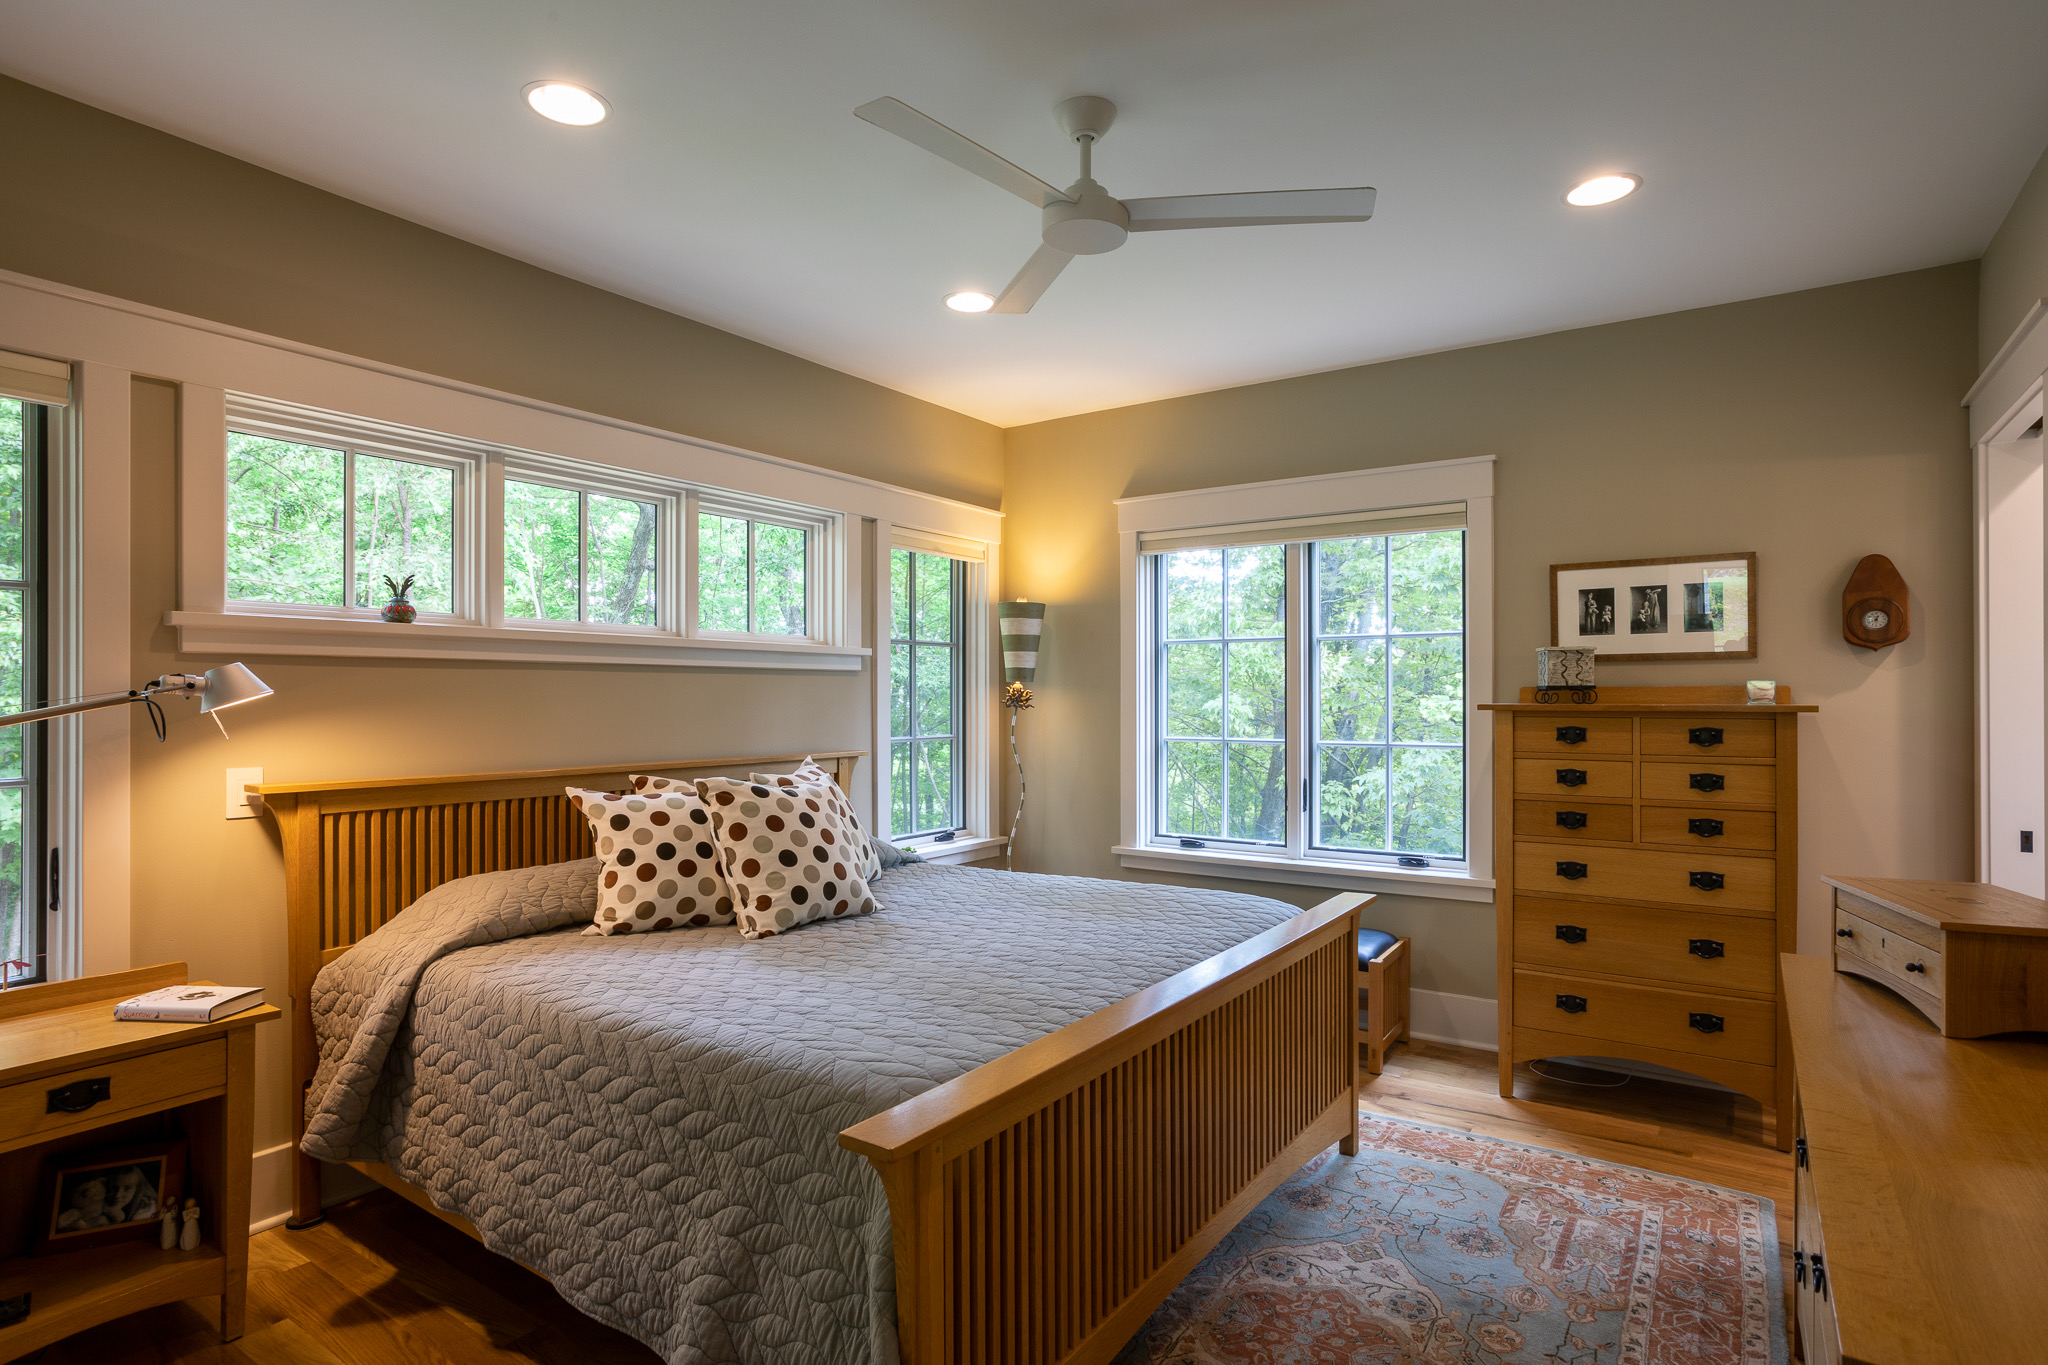 Master bedroom with transom windows over the bed